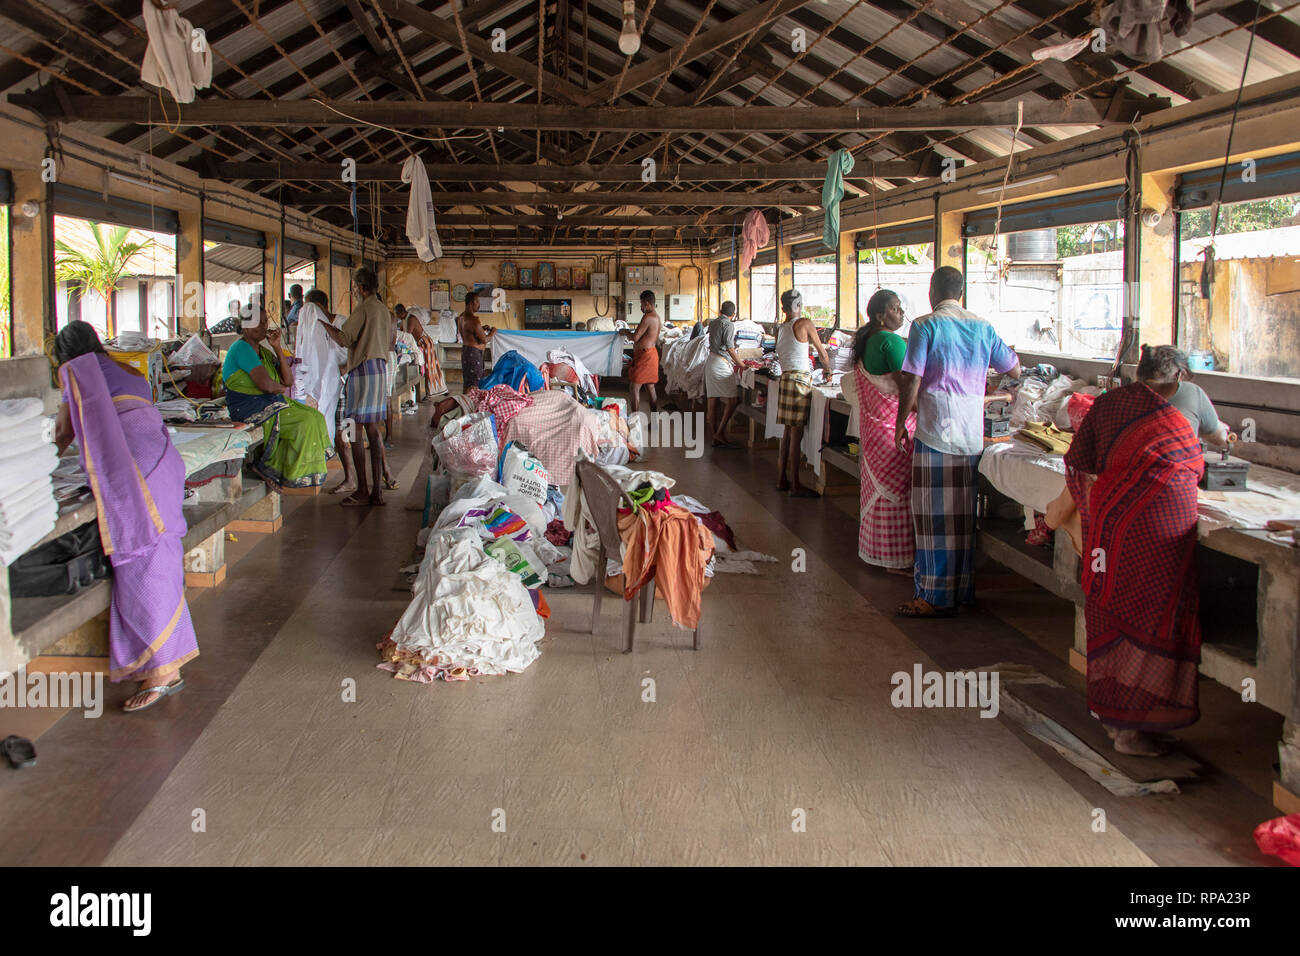 Workers working ironing at the Dhobi khana public laundry in fort Kochi. - Stock Image